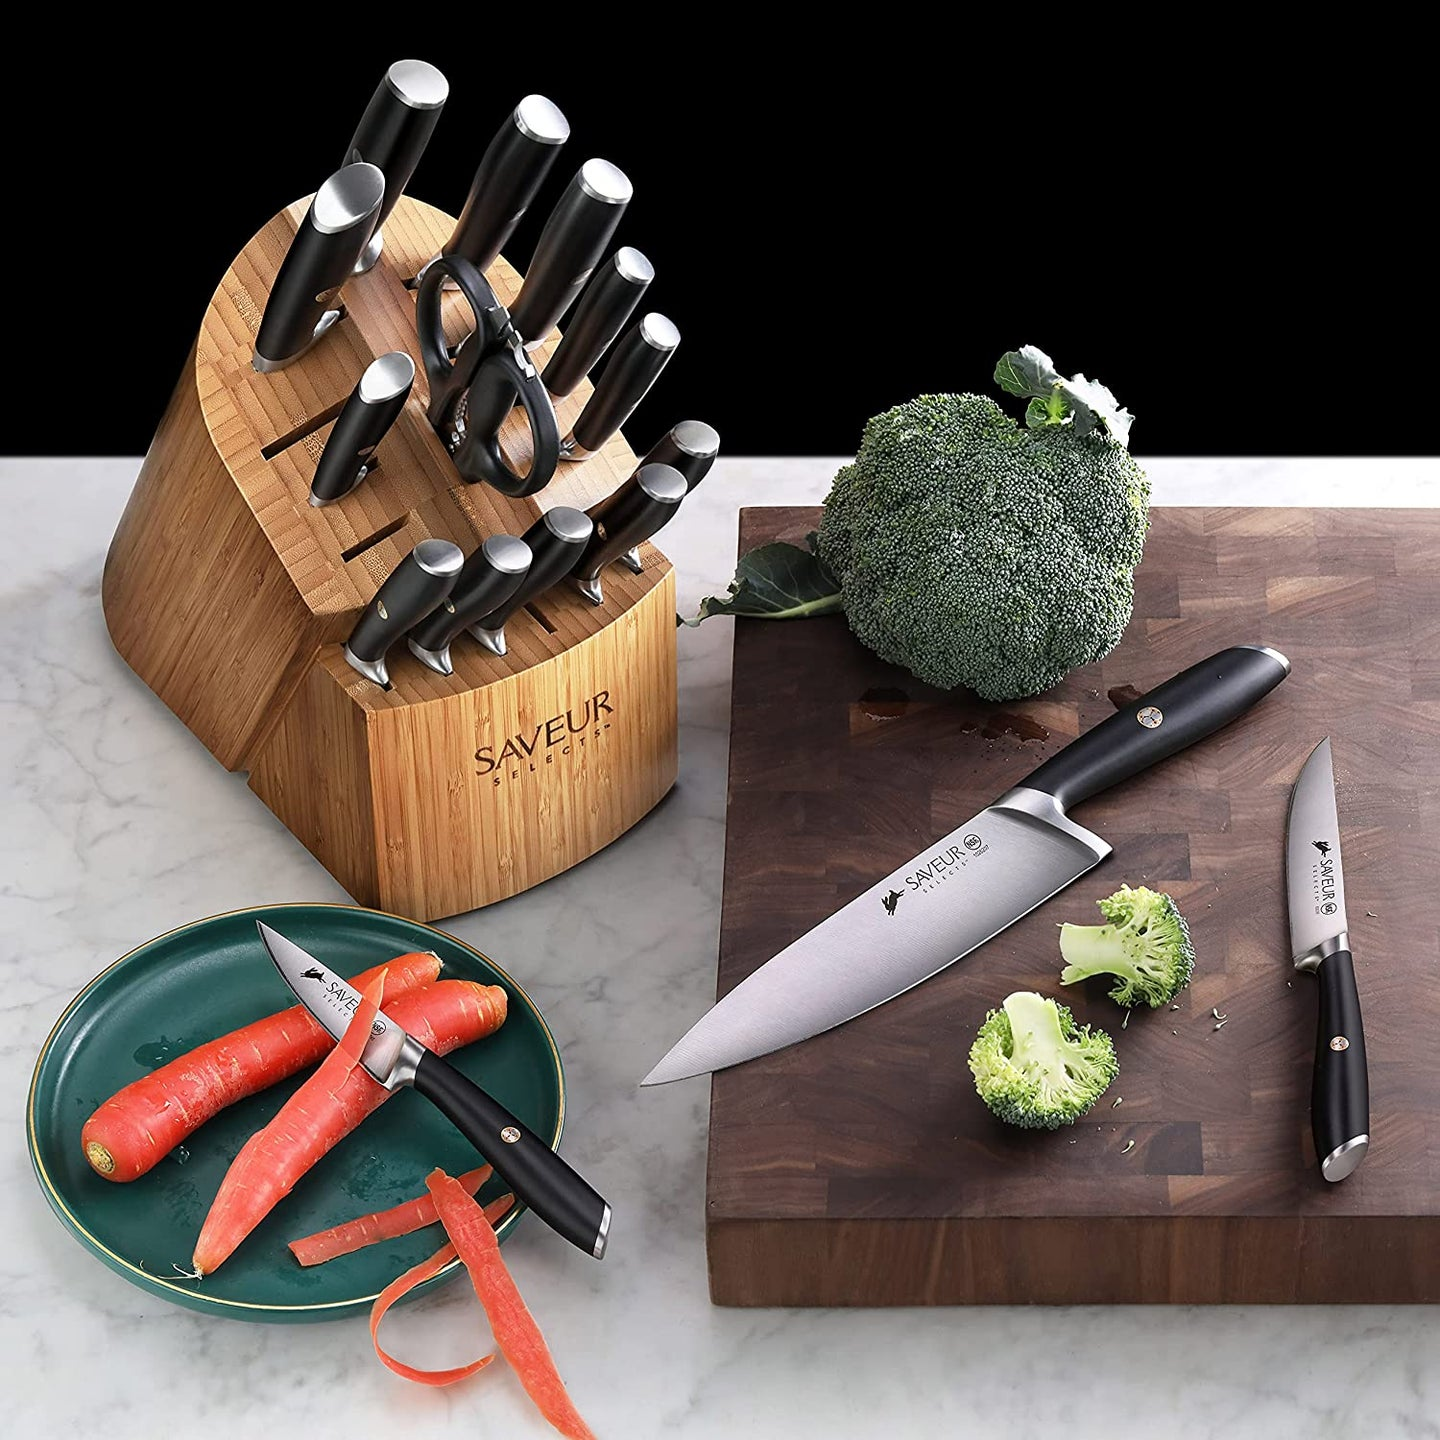 The Best Kitchen Knife Sets for Every Budget